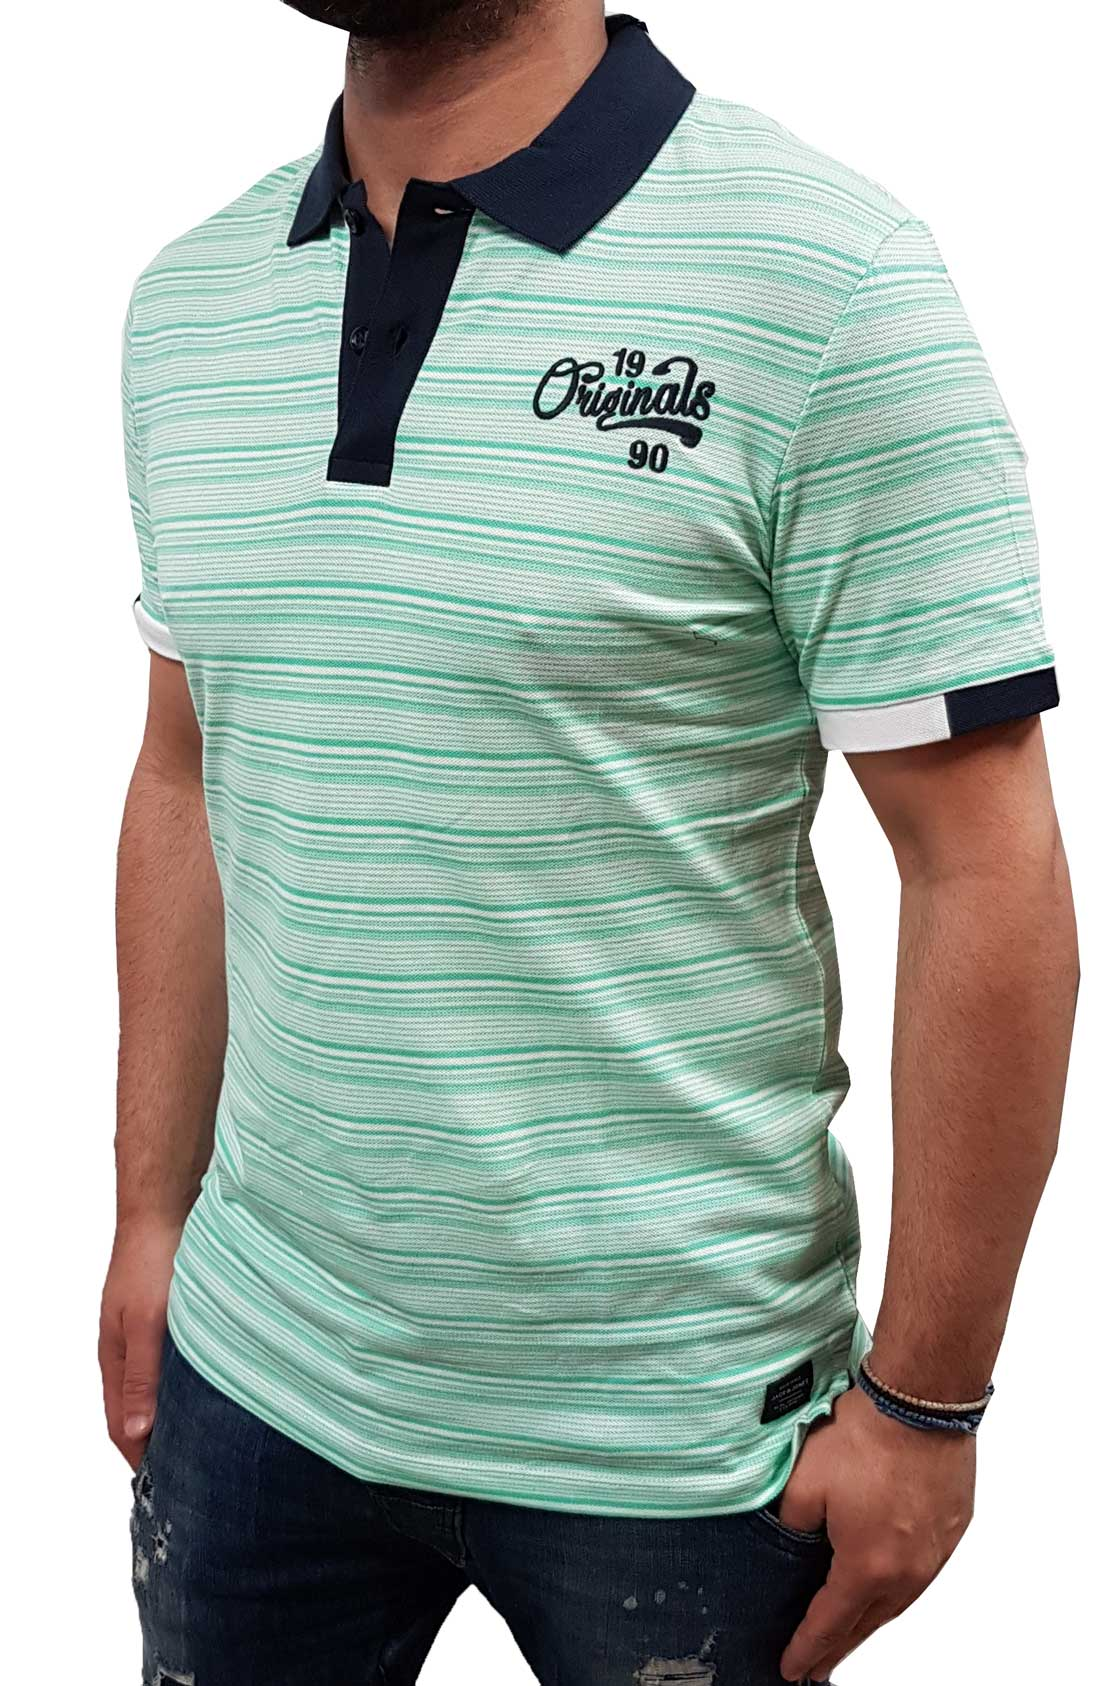 b573fd234d45 Jack Jones - 12139690 - Jorstripe Polo ss - White Stripes -Slim Fit -  Μπλούζα Polo